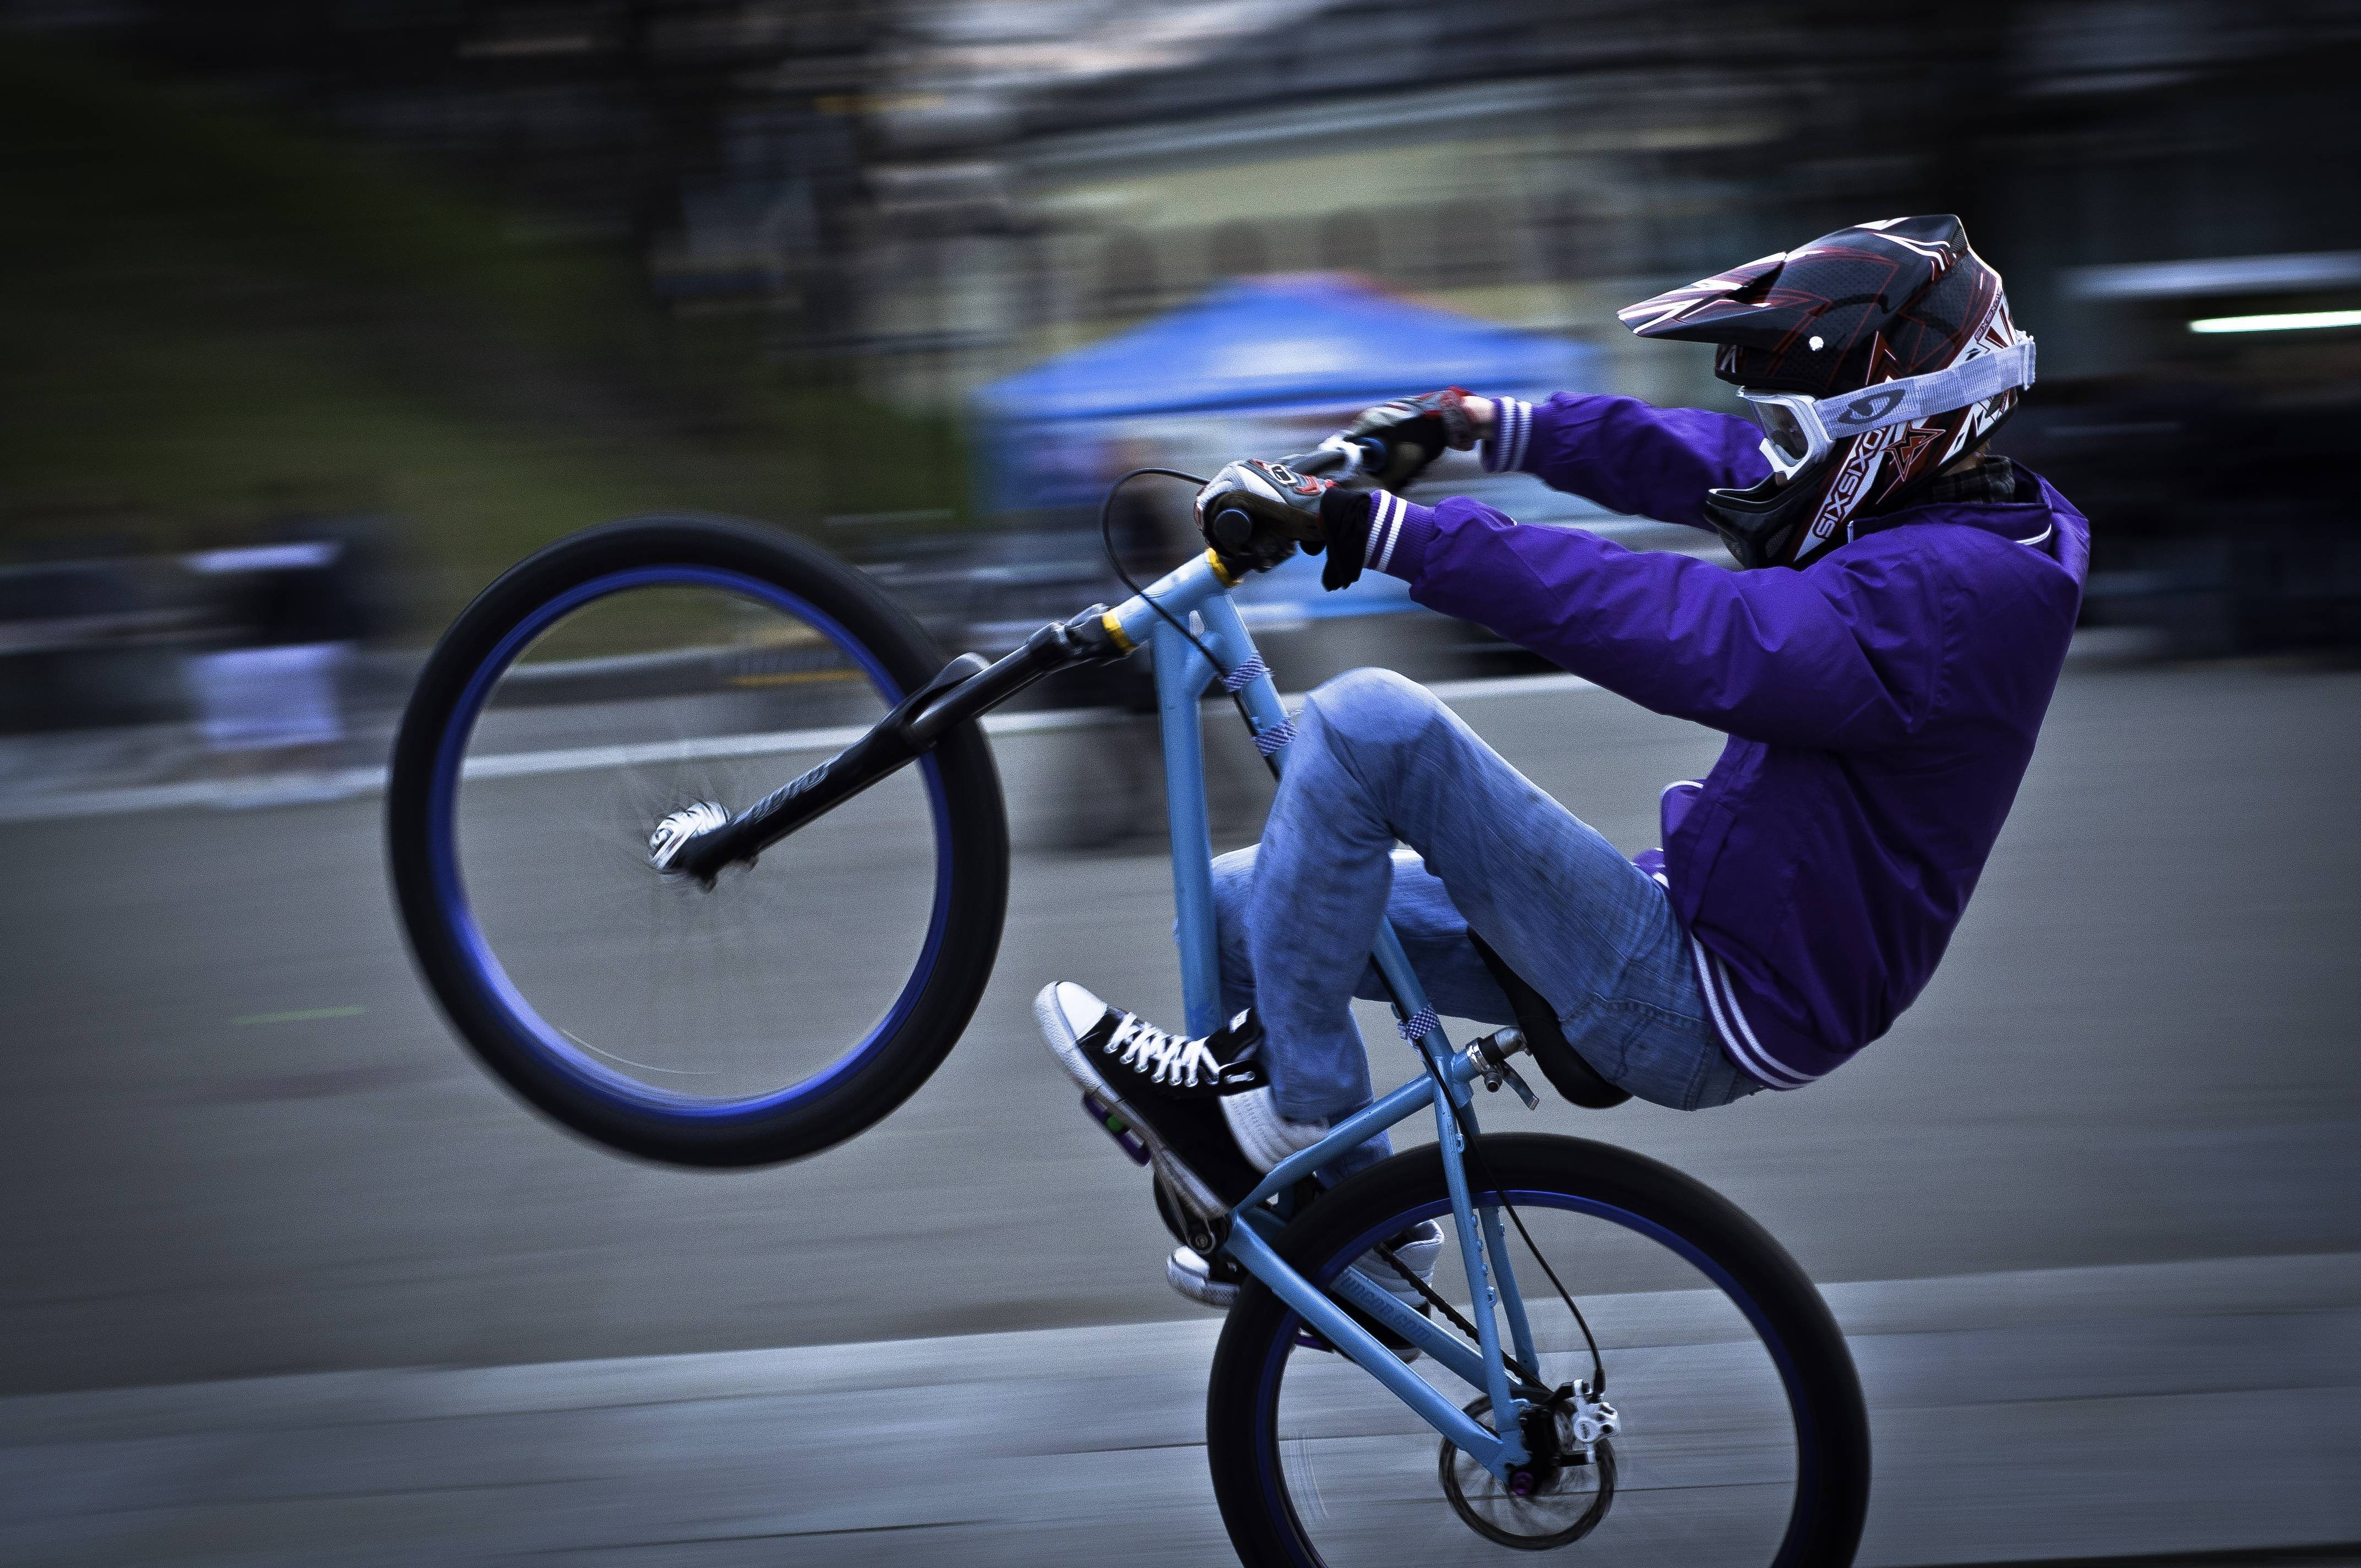 cycle wheelie mountain bikes HD Wallpaper